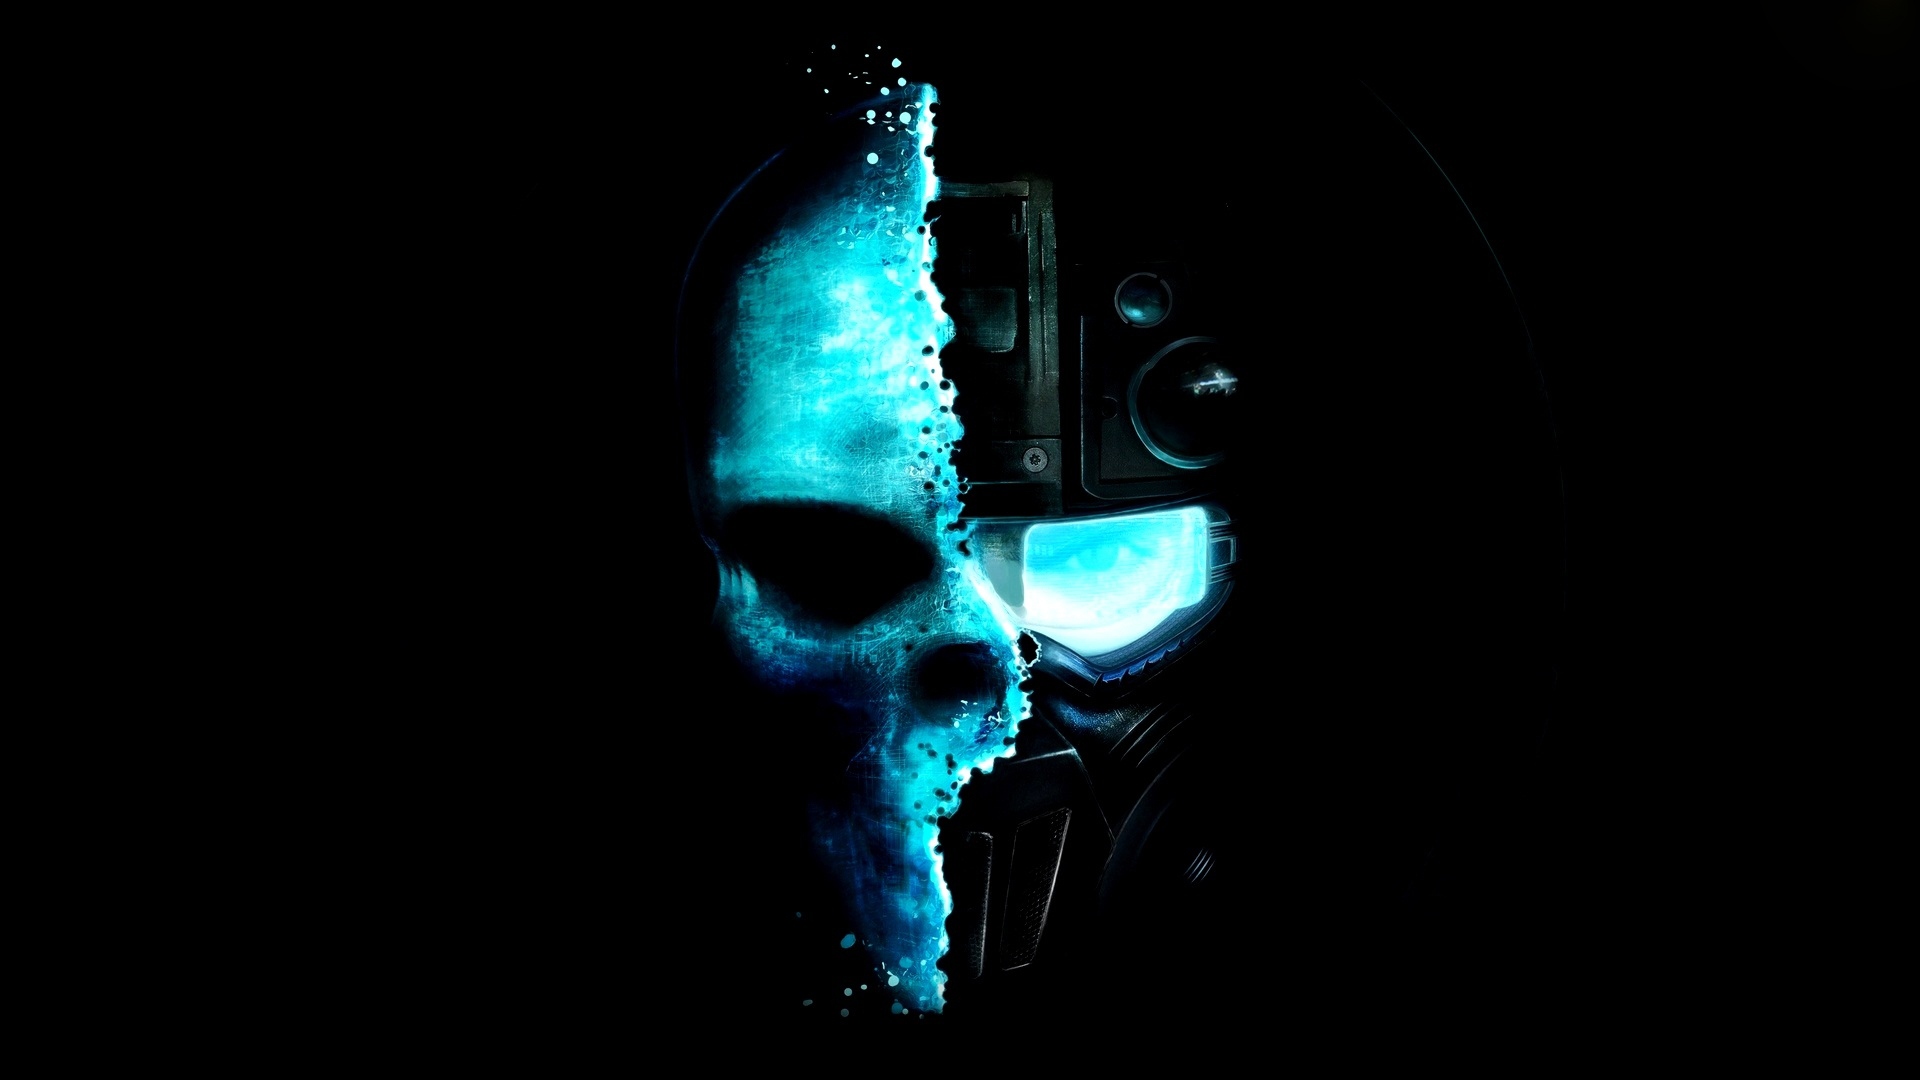 Cool Blue Skull Wallpaper PC 297 Wallpaper WallpaperLepi 1920x1080